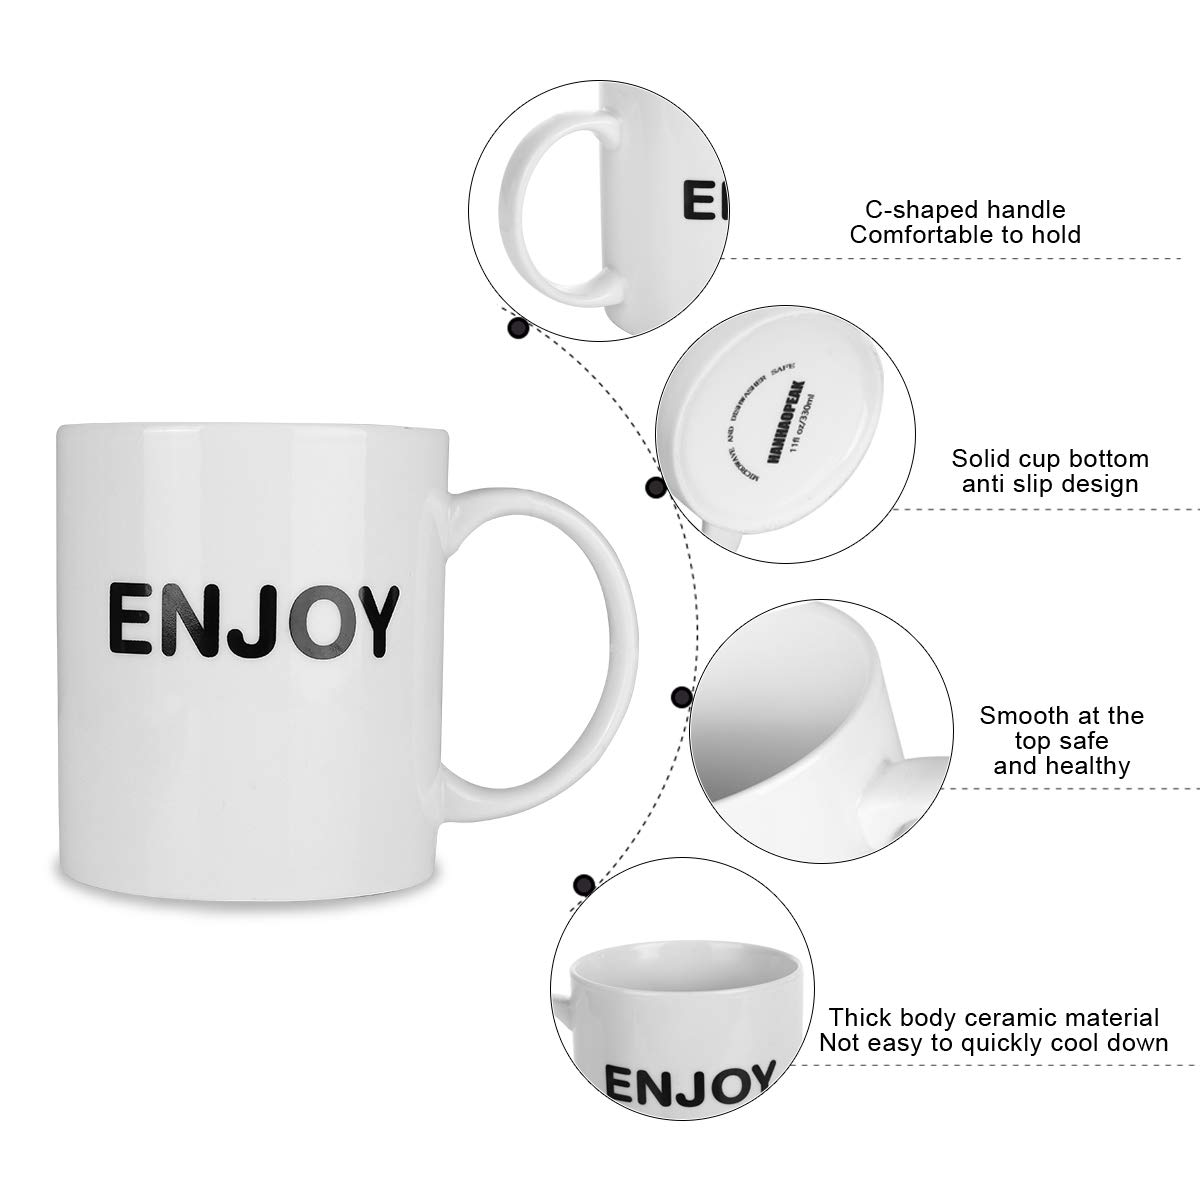 HANHAOPEAK Coffee Mug, 11oz Funny Coffee Mug: Enjoy, Unique Ceramic Novelty Holiday Christmas Hanukkah Gift for Men and Women Who Love Tea Mugs Coffee Cups, Suitable for Office and Home by HANHAOPEAK (Image #4)